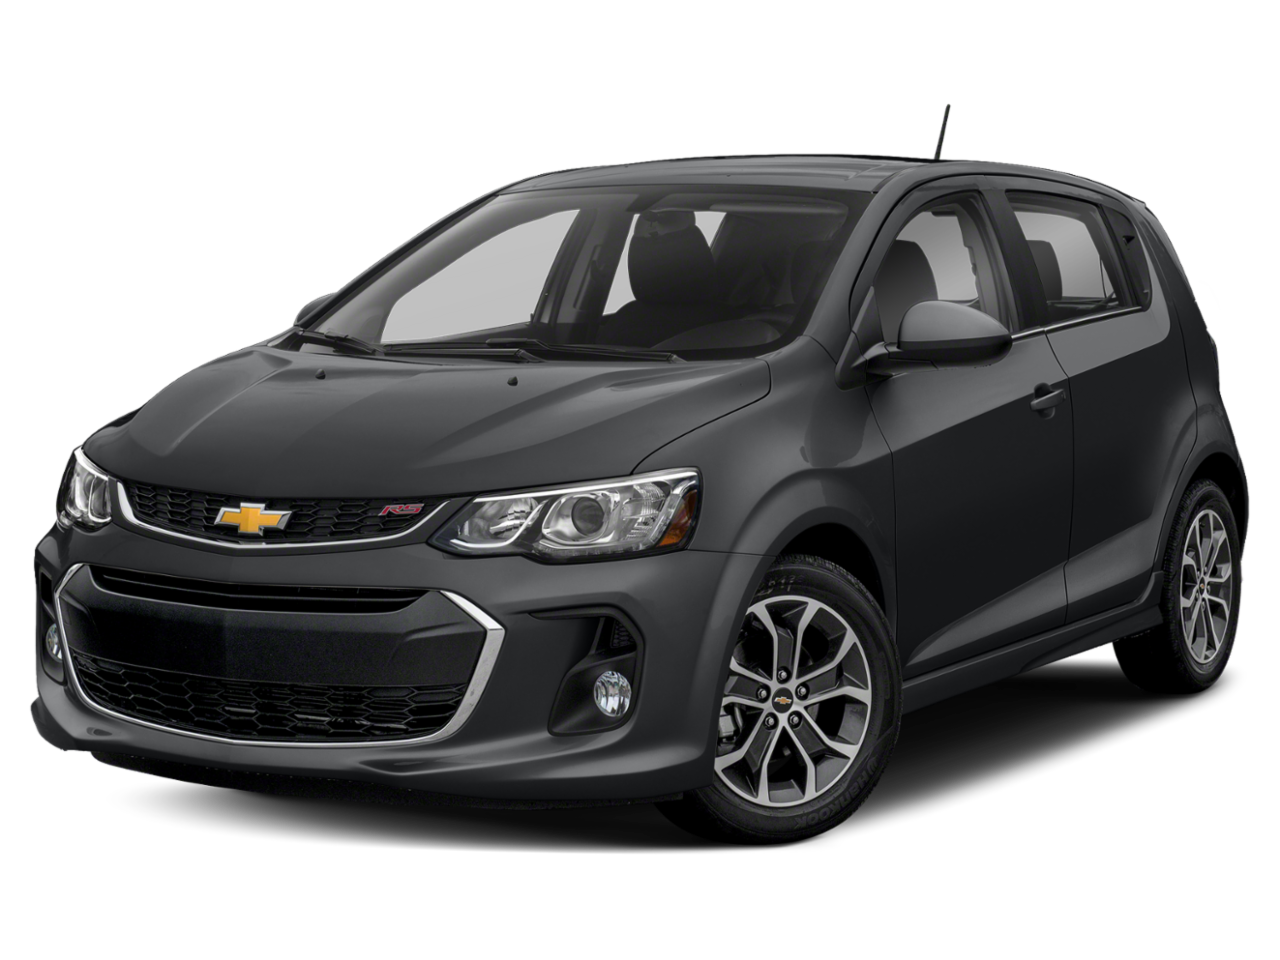 "2020 Chevrolet<br/><span class=""vdp-trim"">Sonic LT FWD Hatchback</span>"